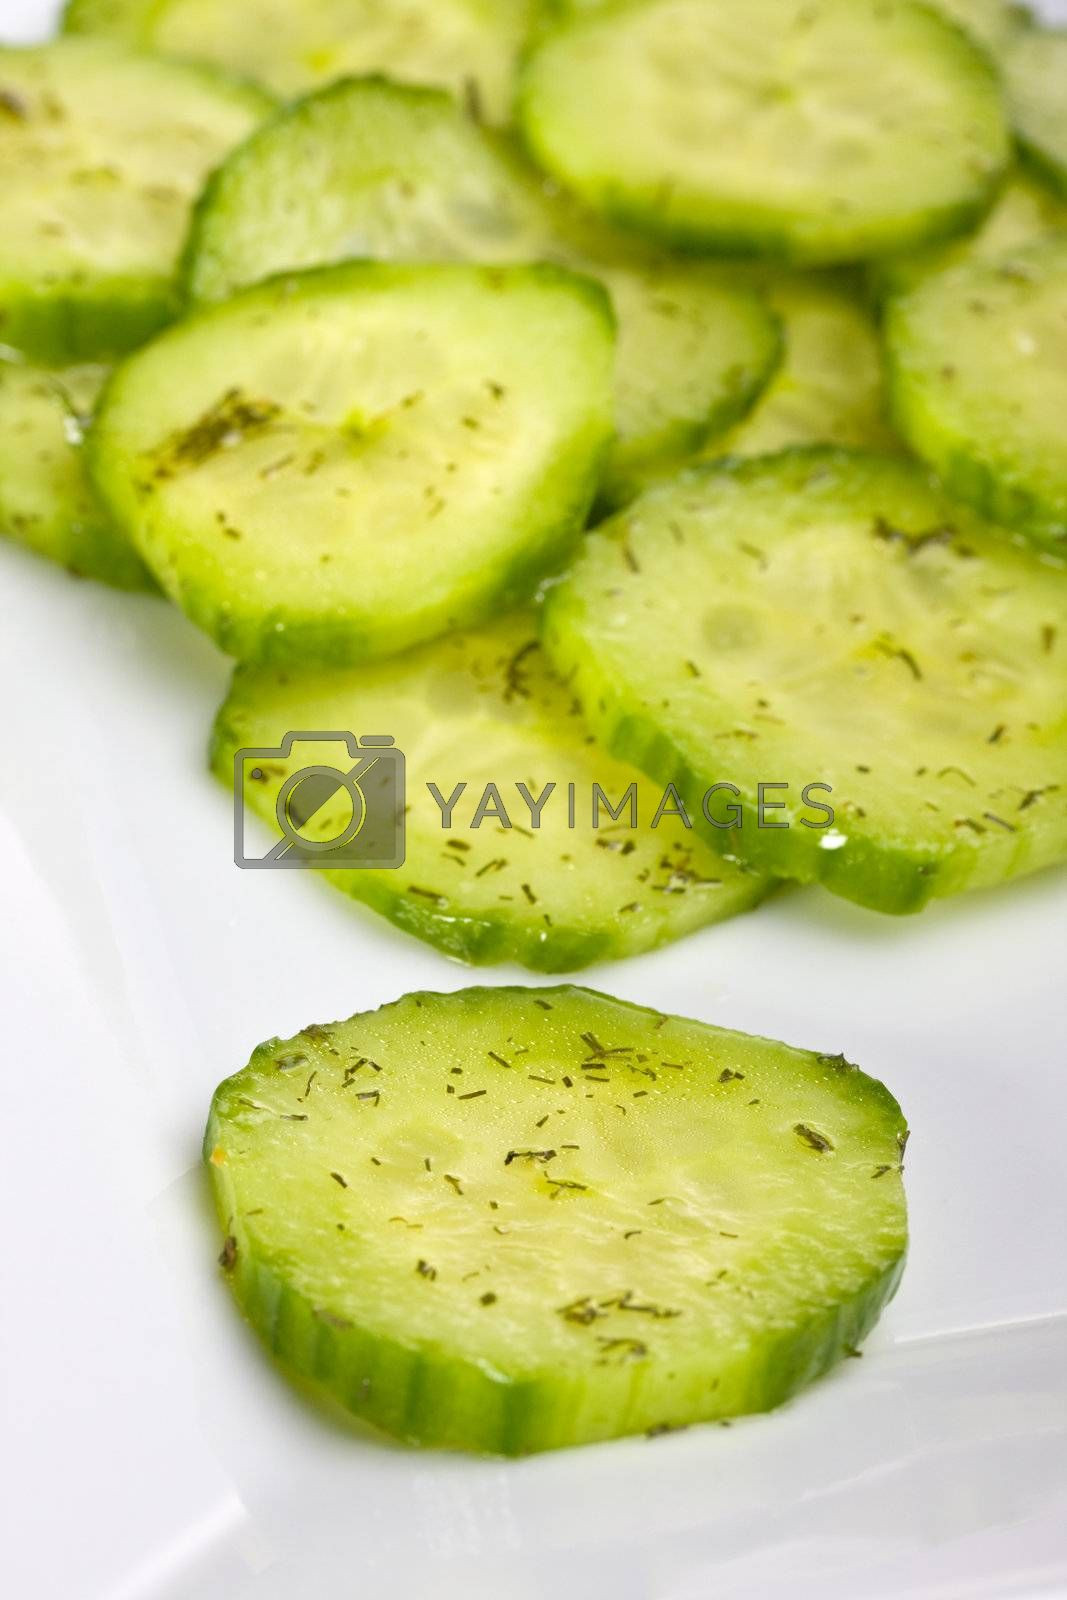 cucumber salad with dill in a white square plate